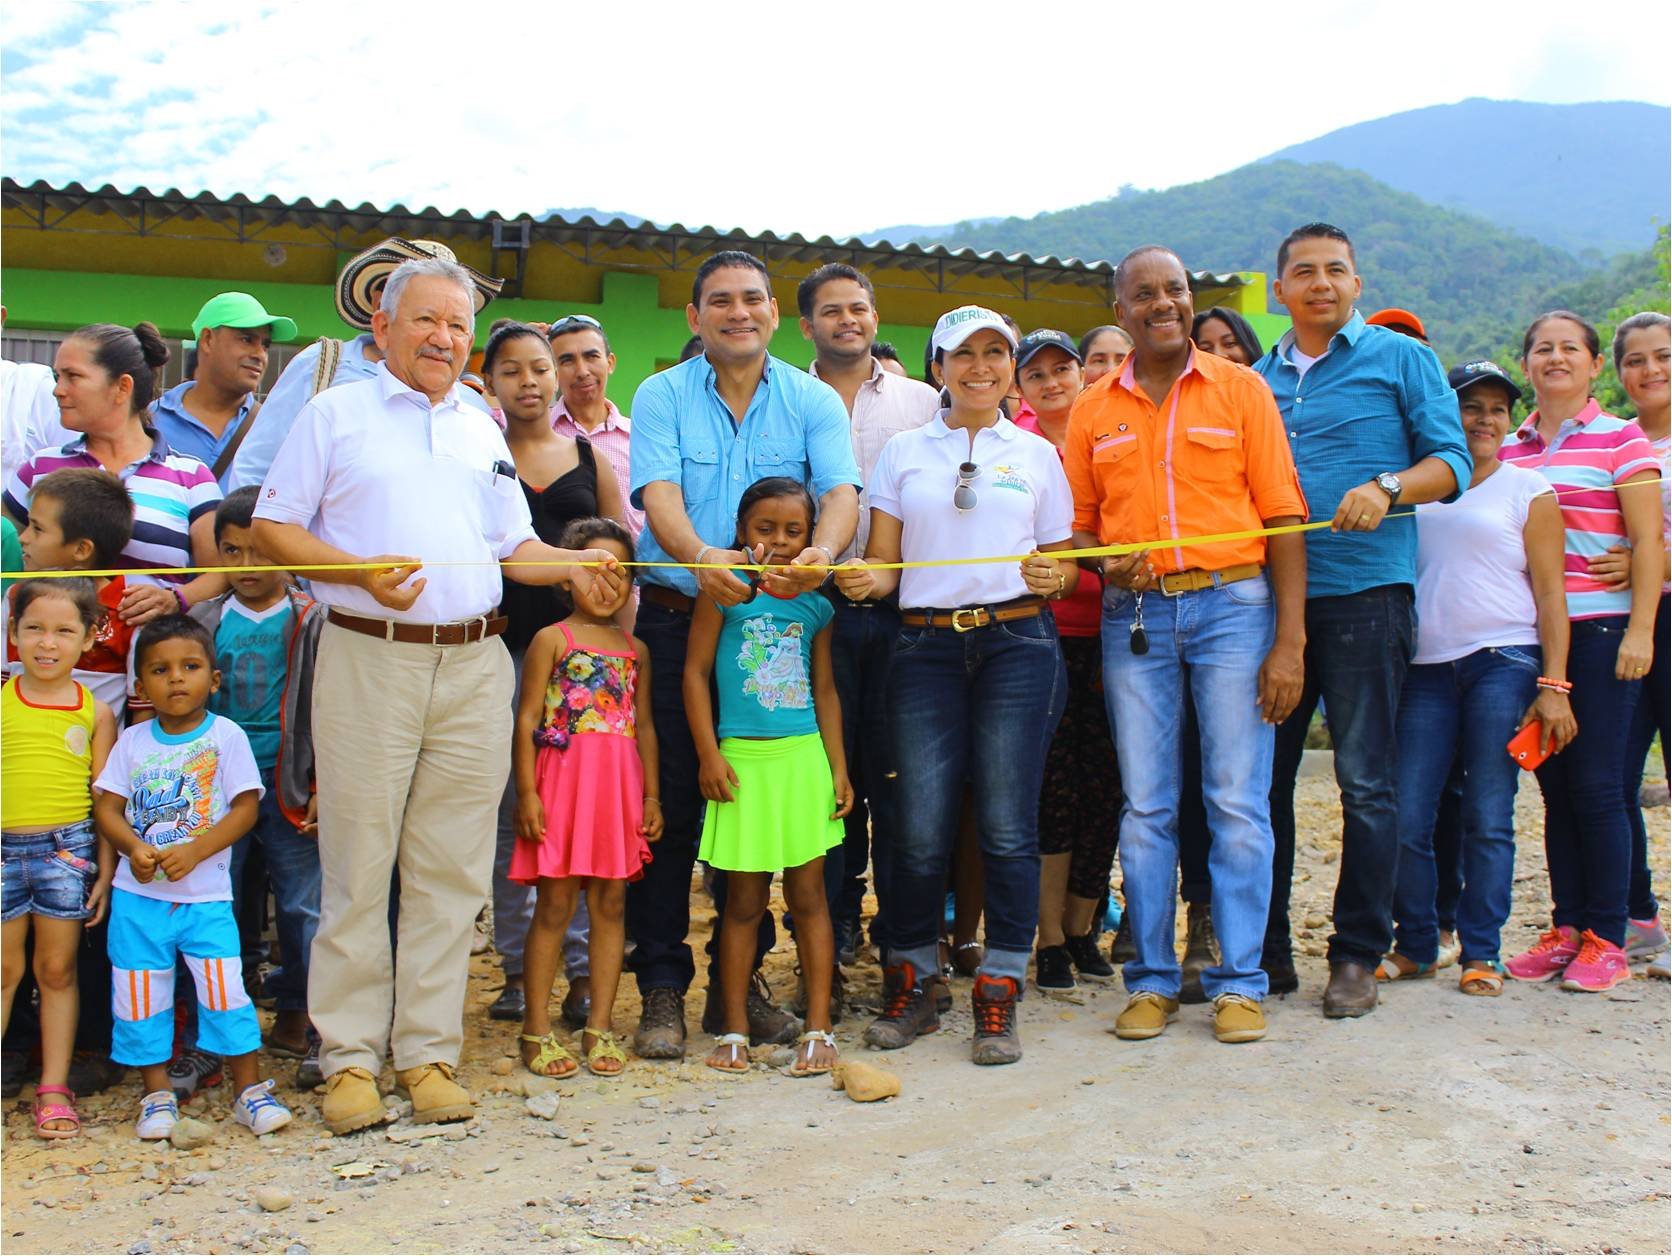 Rafael Garcia, Coordinator of the Community Relations Department, and the Mayor of La Jagua de Ibirico, Didier Lobo, inaugurate the school for the community of Las Animas